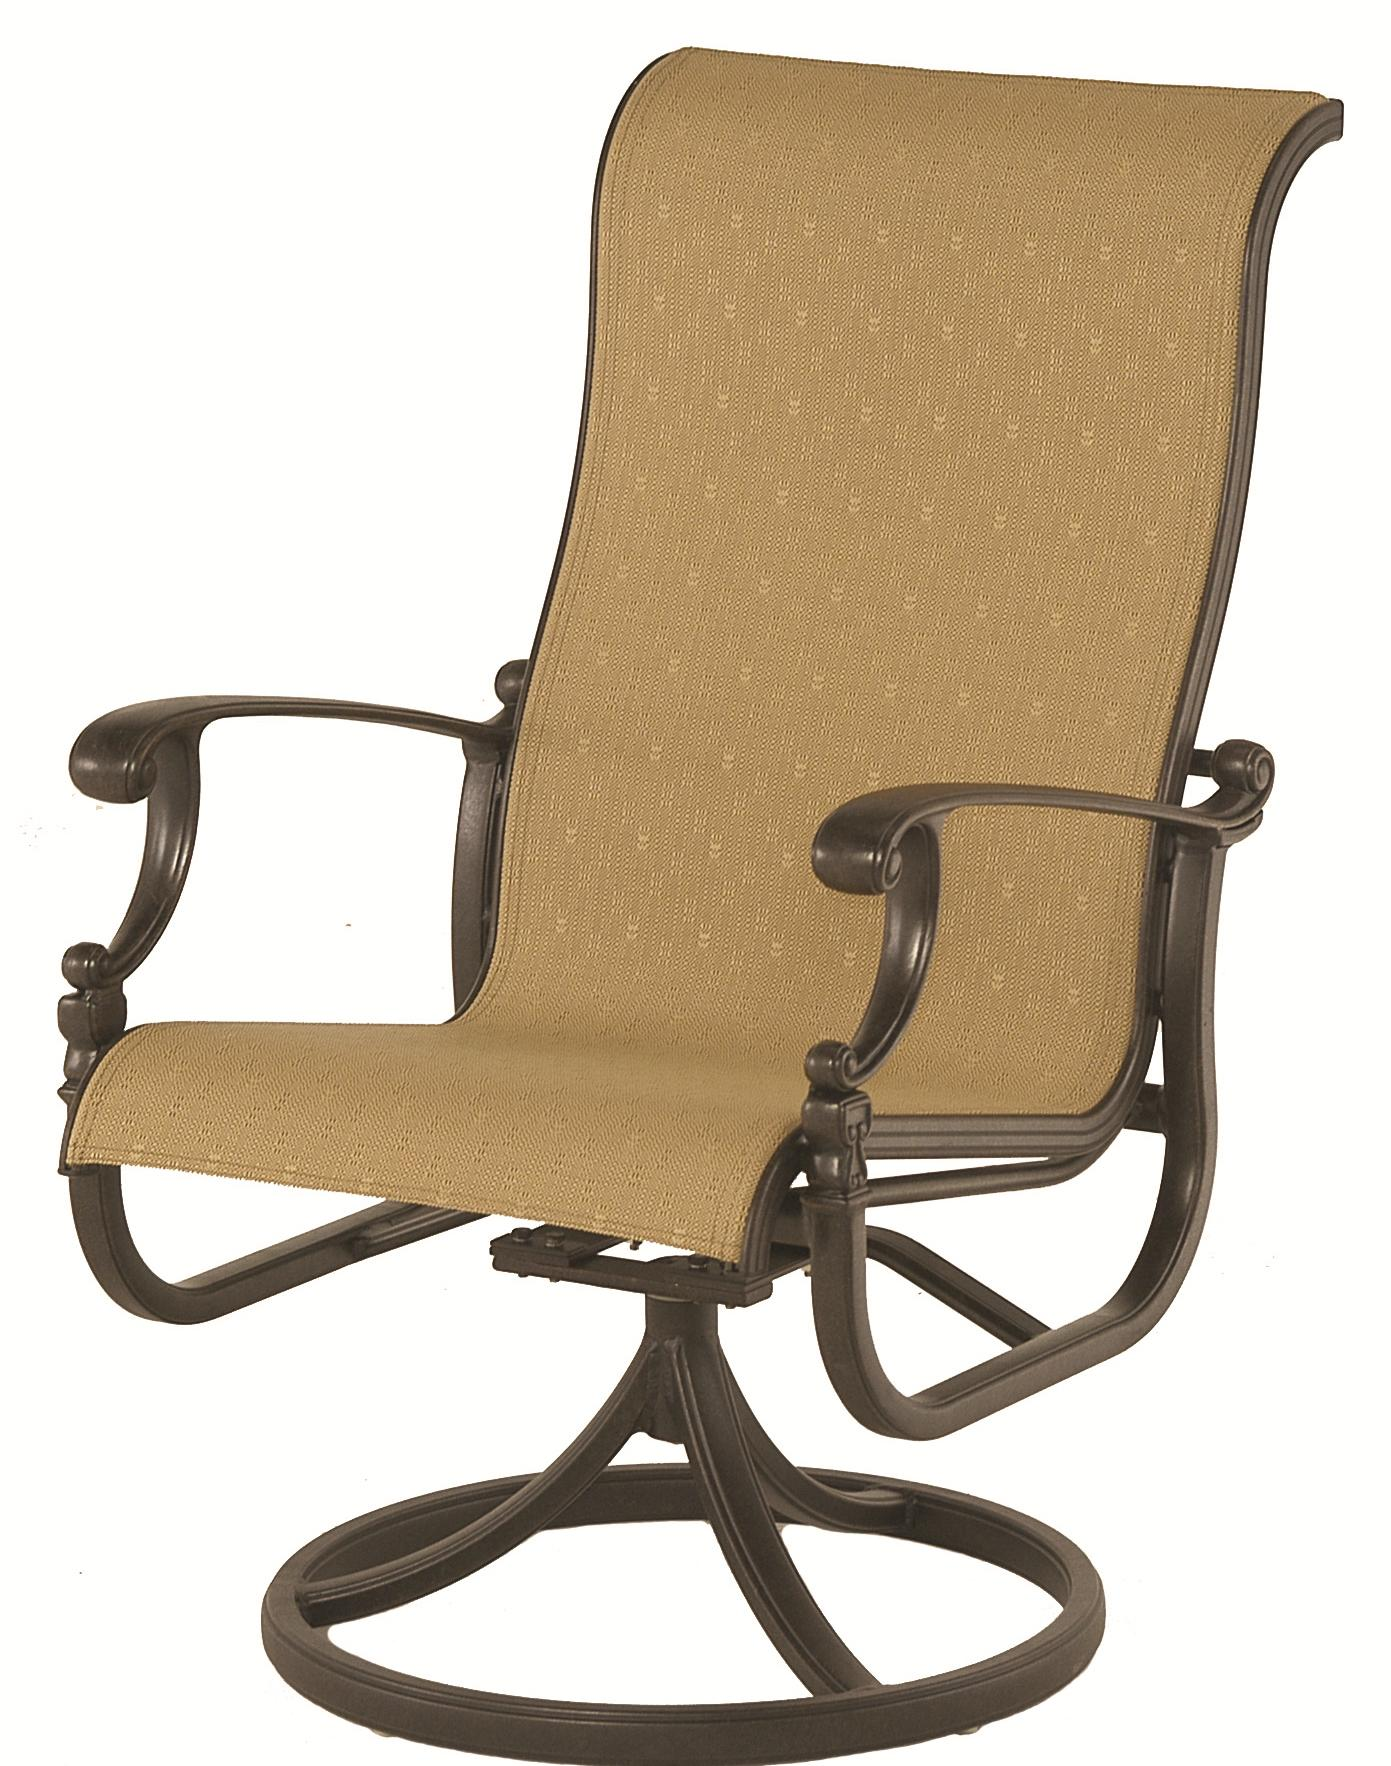 prices inspirational tuscany furniture patio hanamint of